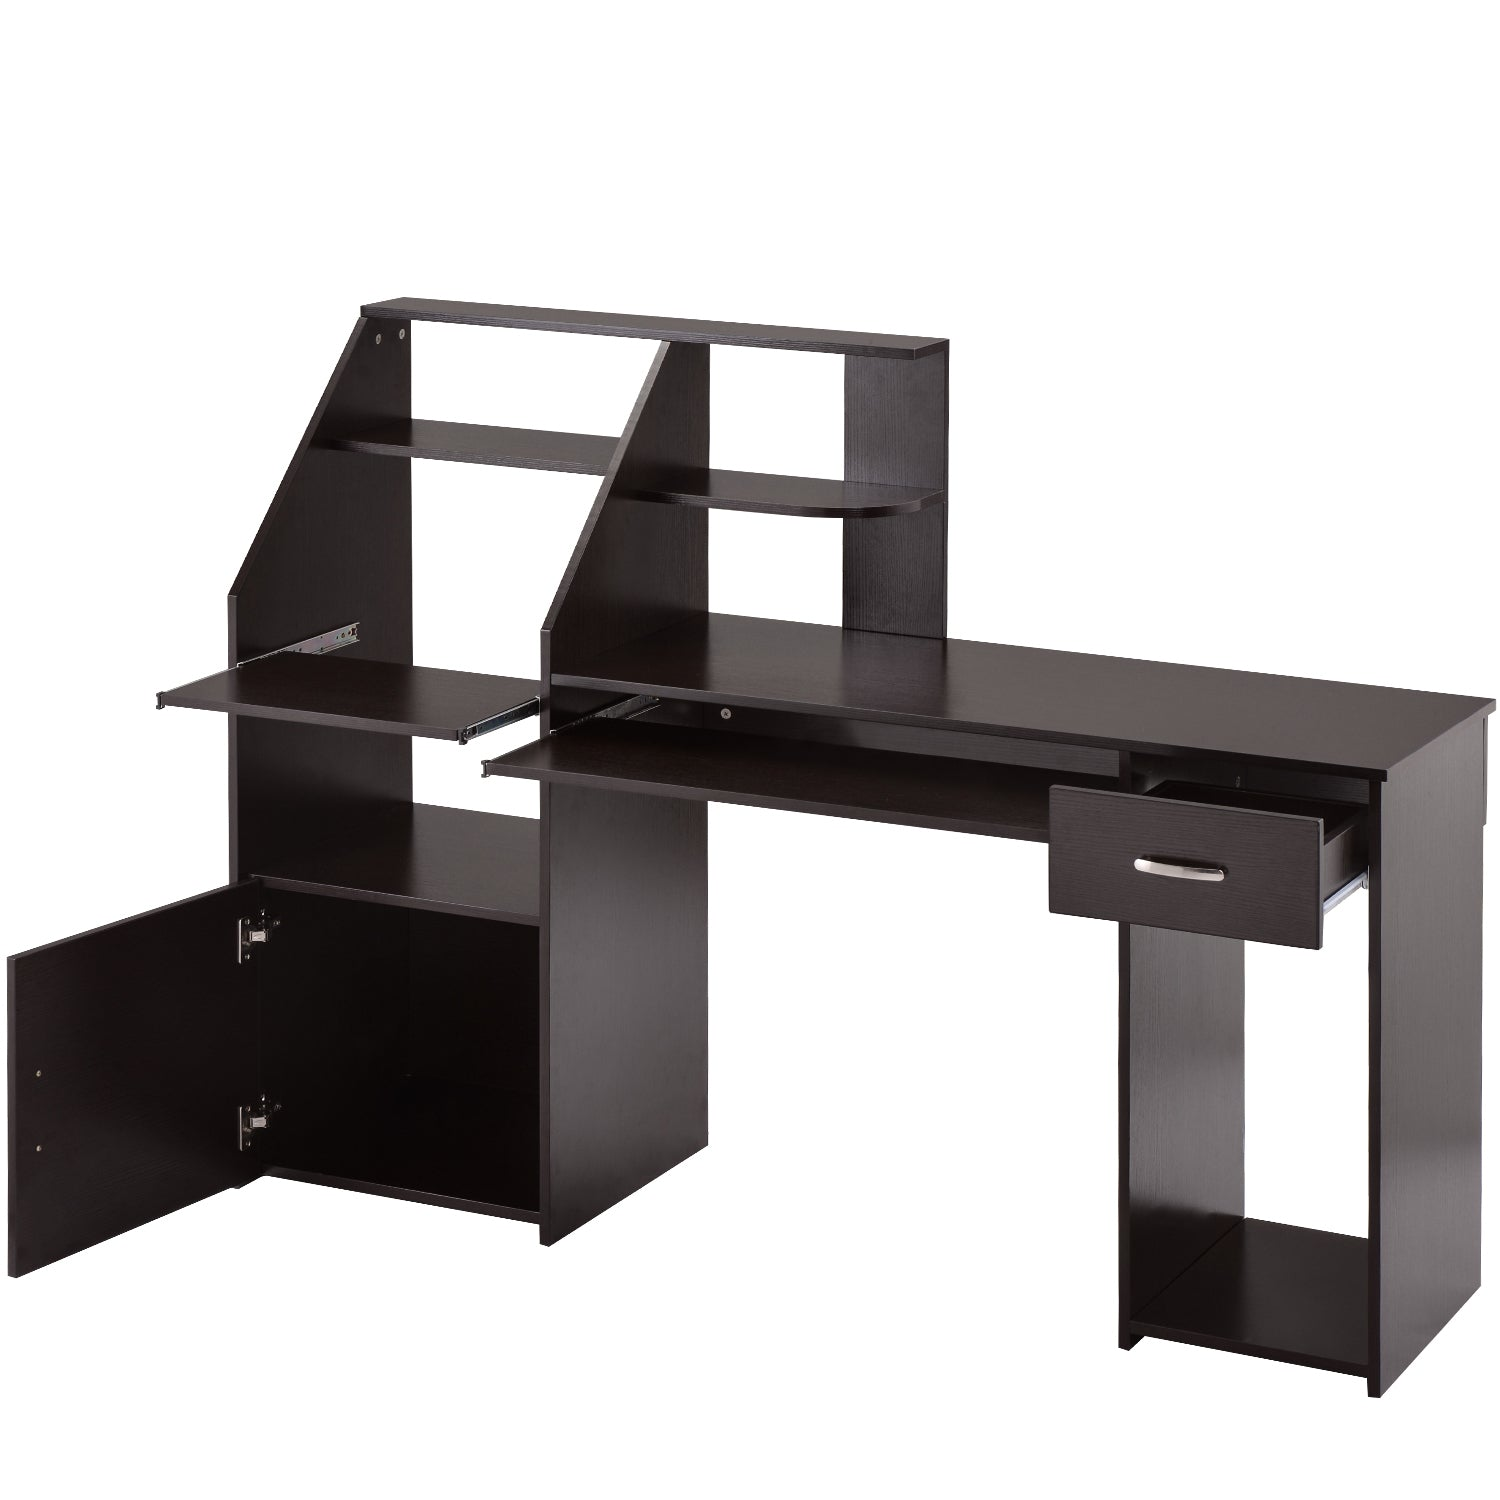 Dim Gray Multi-Functions Computer Desk with Cabinet Espresso BH186907